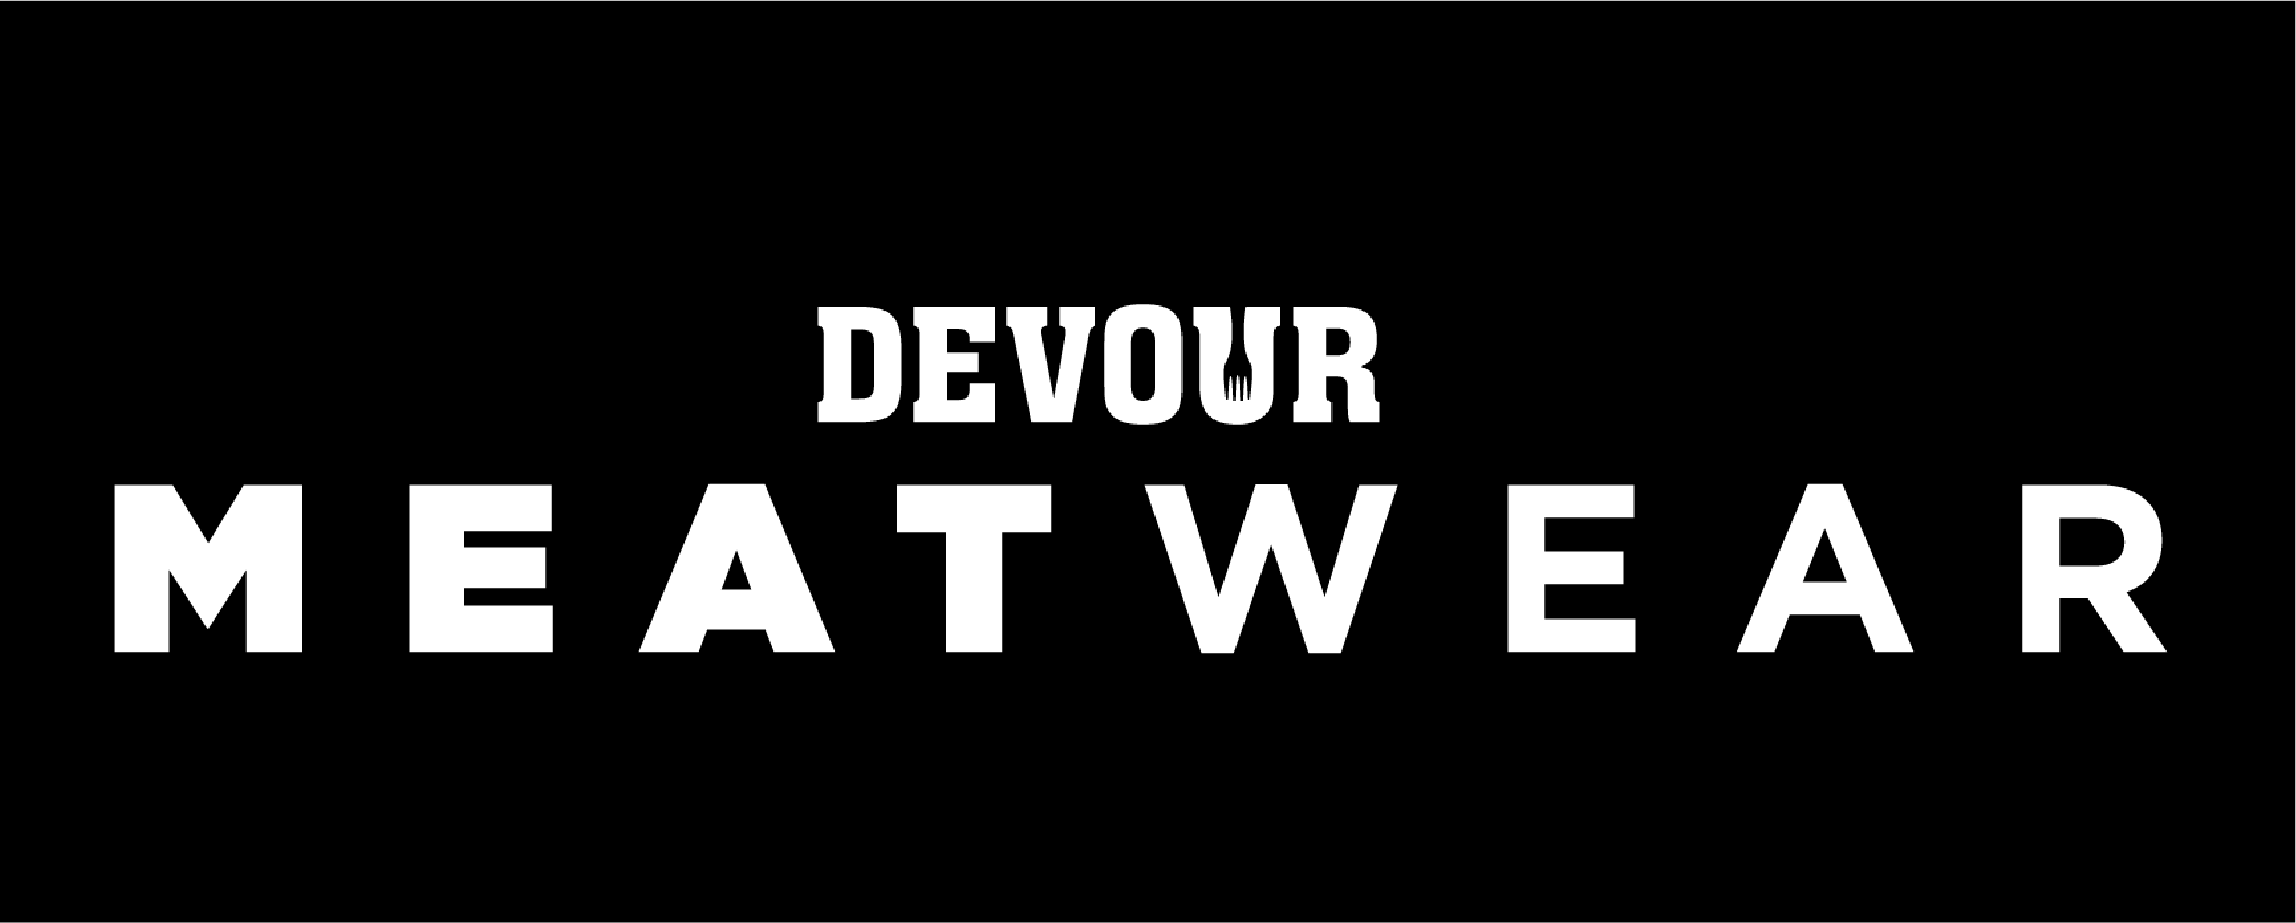 MeatWear_Devour_logo_revised.png